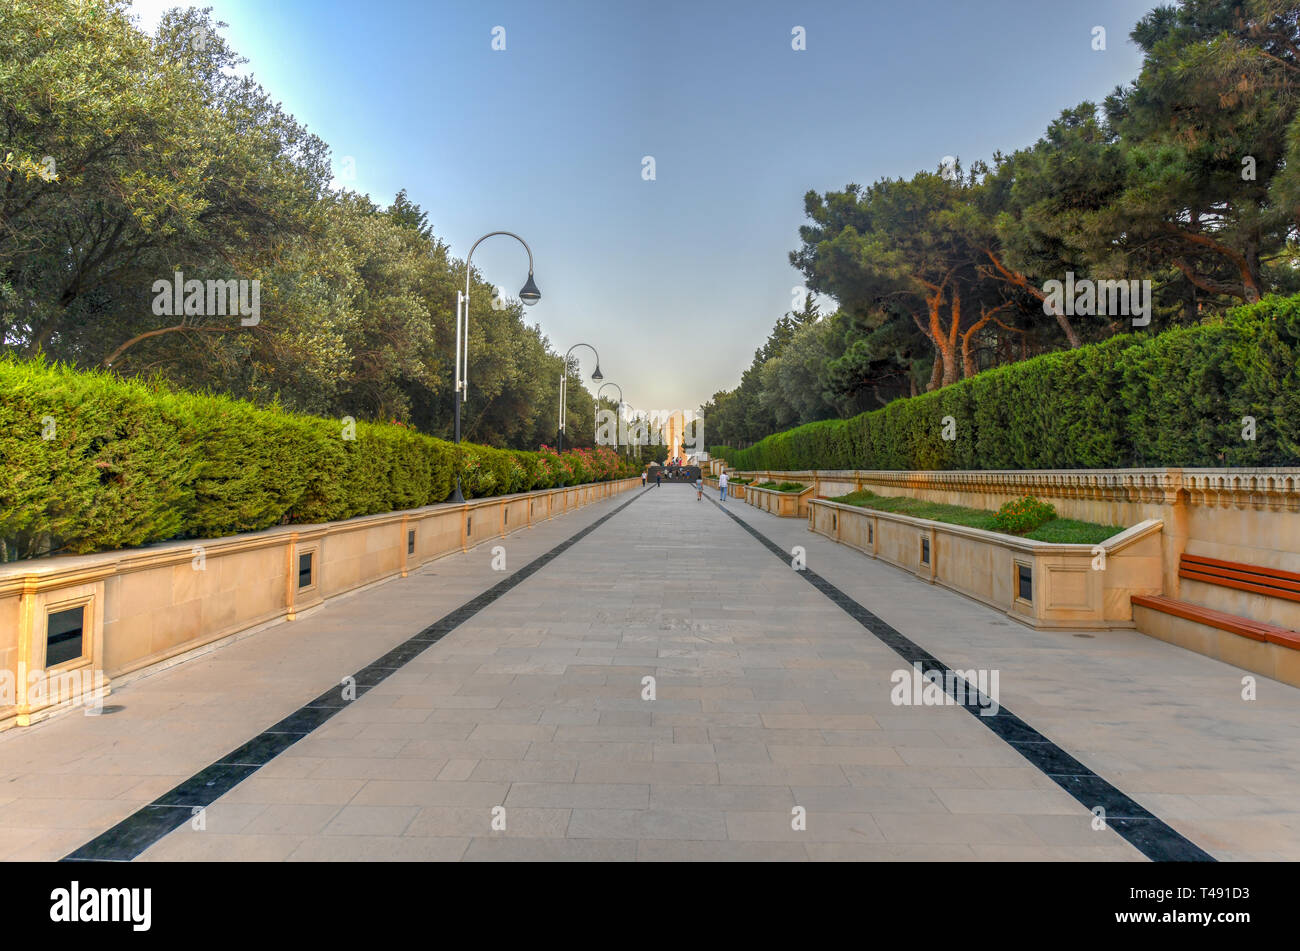 Baku, Azerbaijan - July 14, 2018. Alley of Martyrs in the Upland Park in Baku Azerbaijan. Stock Photo